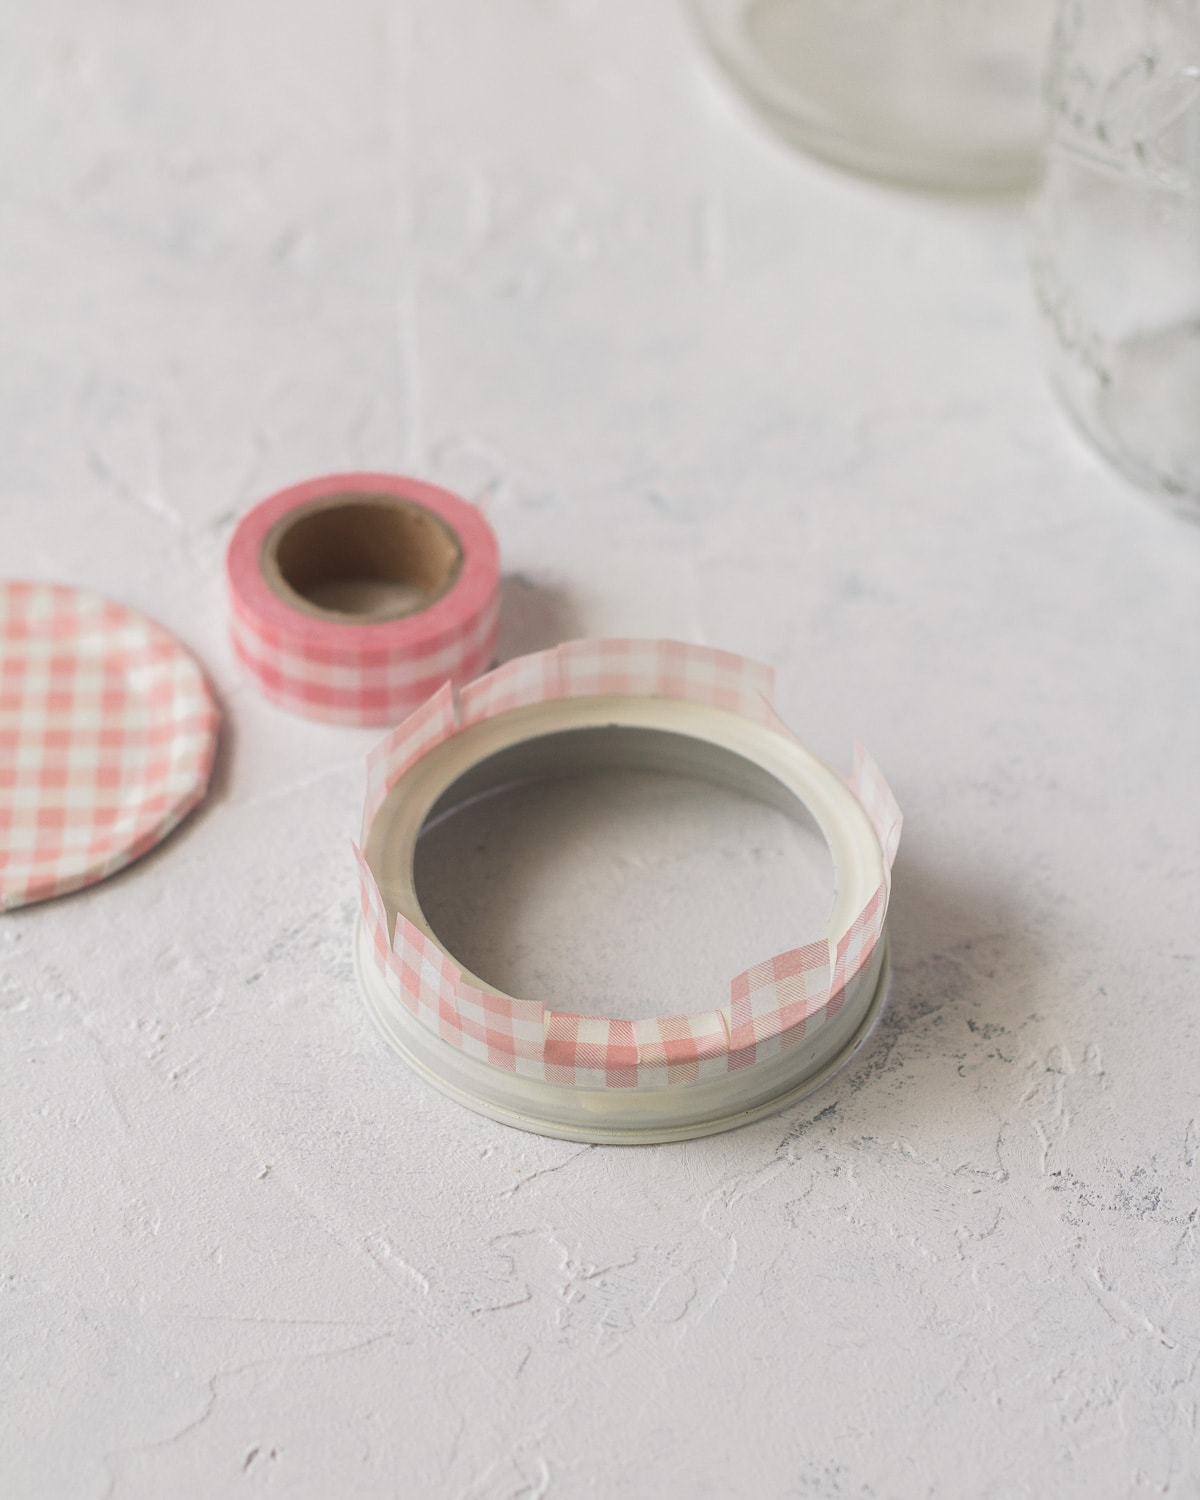 Jar lid wrapped with pink checked washi tape.